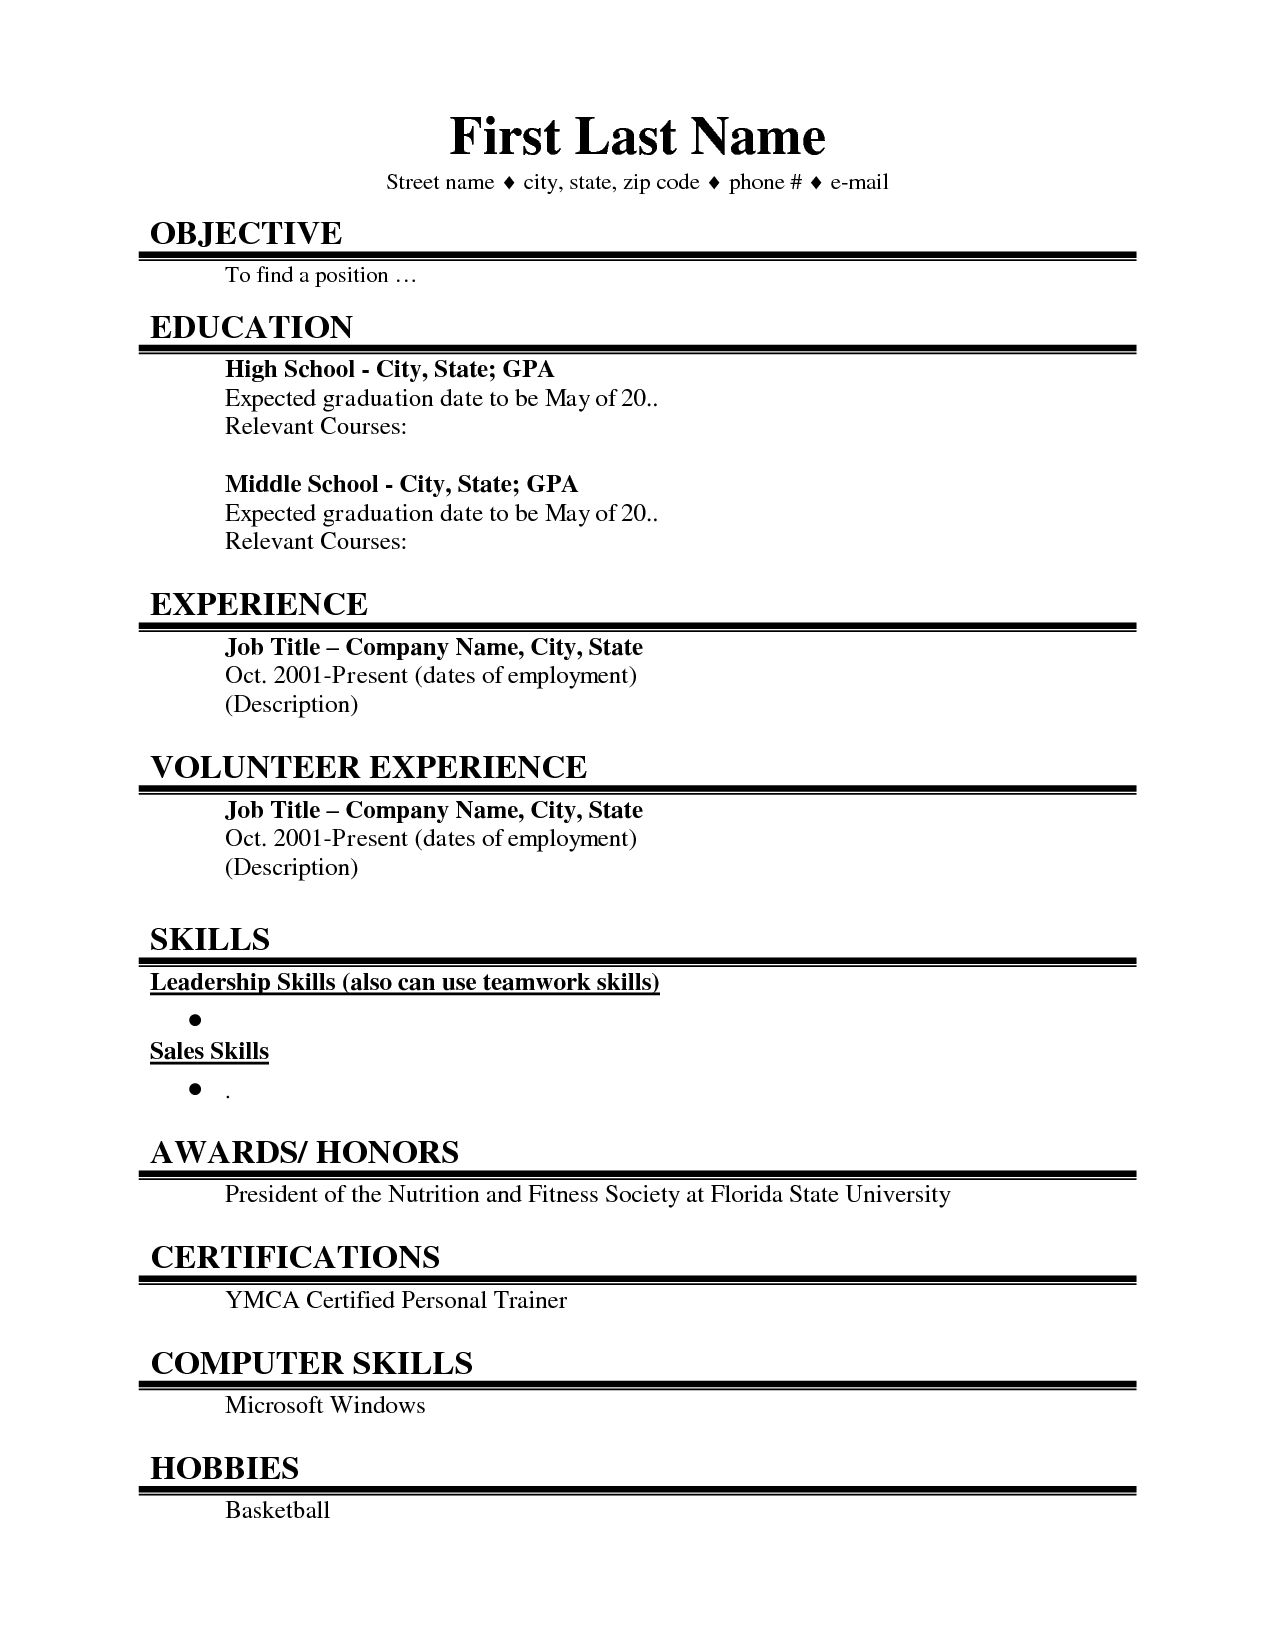 Resume First Resume Template Australia resume for high school student with no work experience http first job google search more